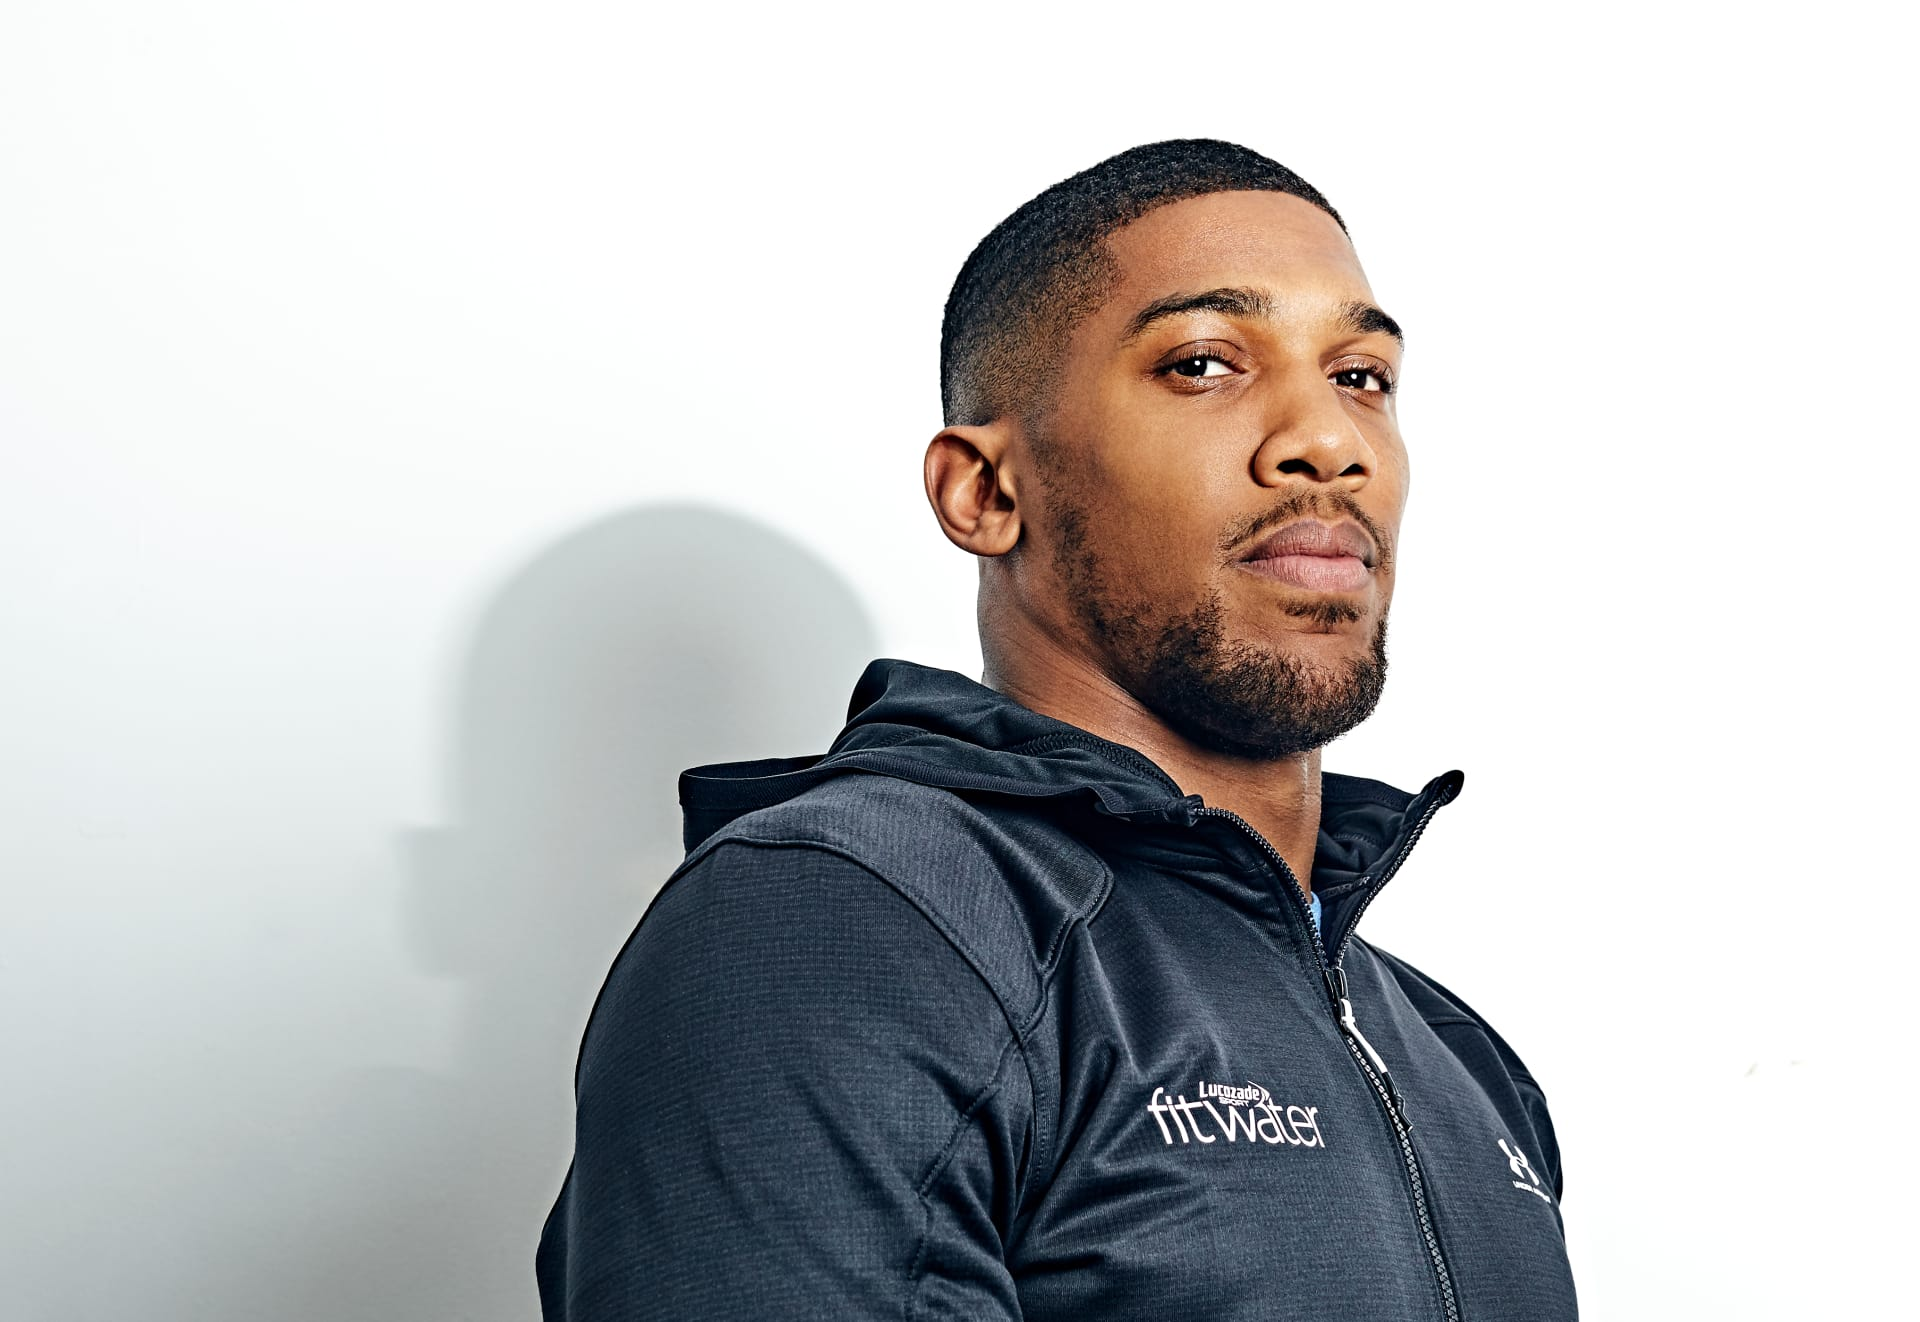 afe6a543 Anthony Joshua on the Importance of Community, Confronting Crime and ...